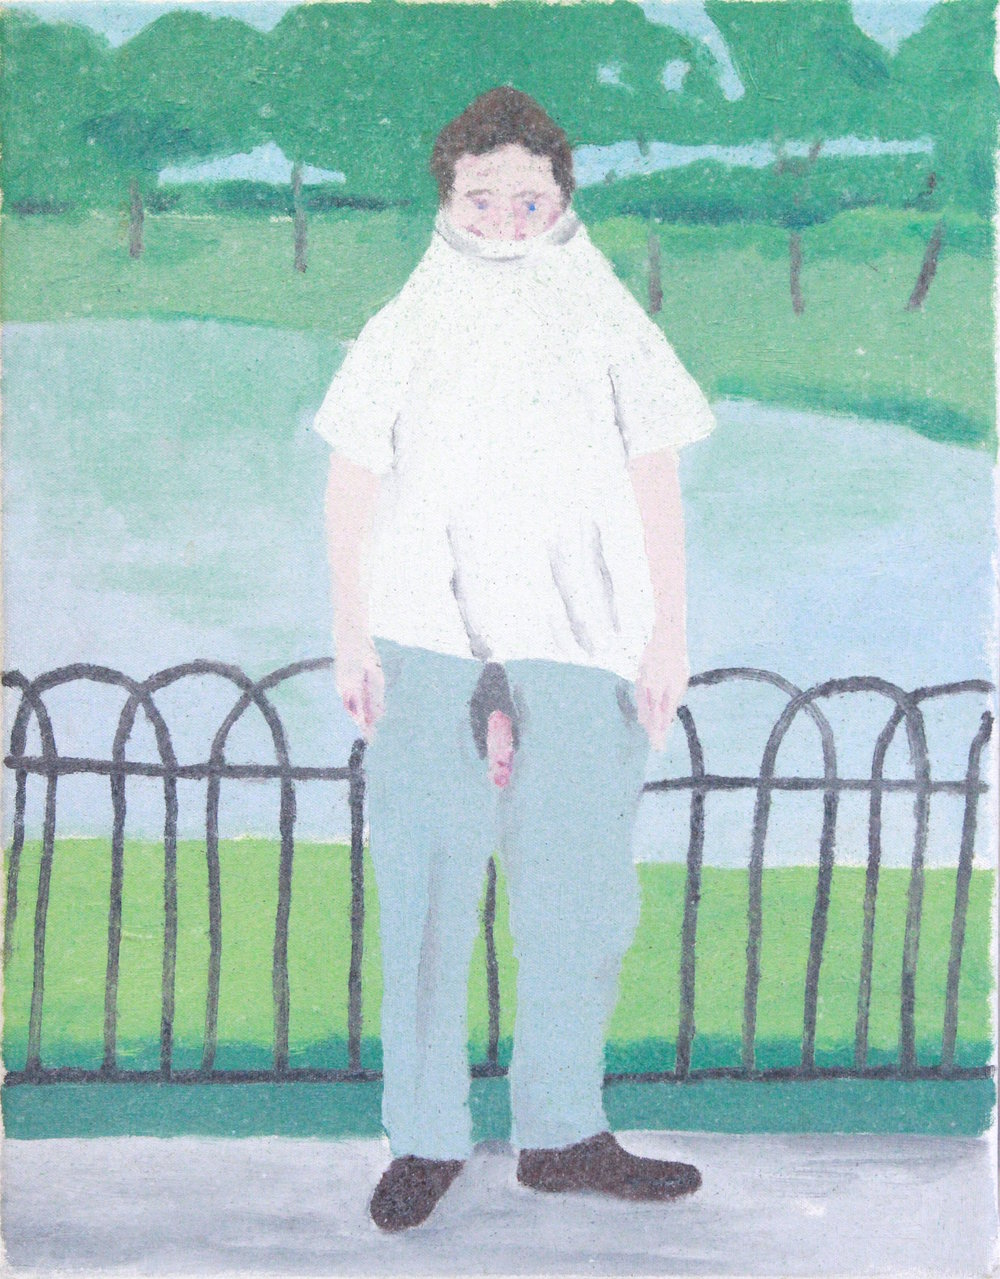 James Rielly  Man in the park  1989 oil on canvas 46 cm x 36 cm © courtesy of the artist & galerie l'inlassable